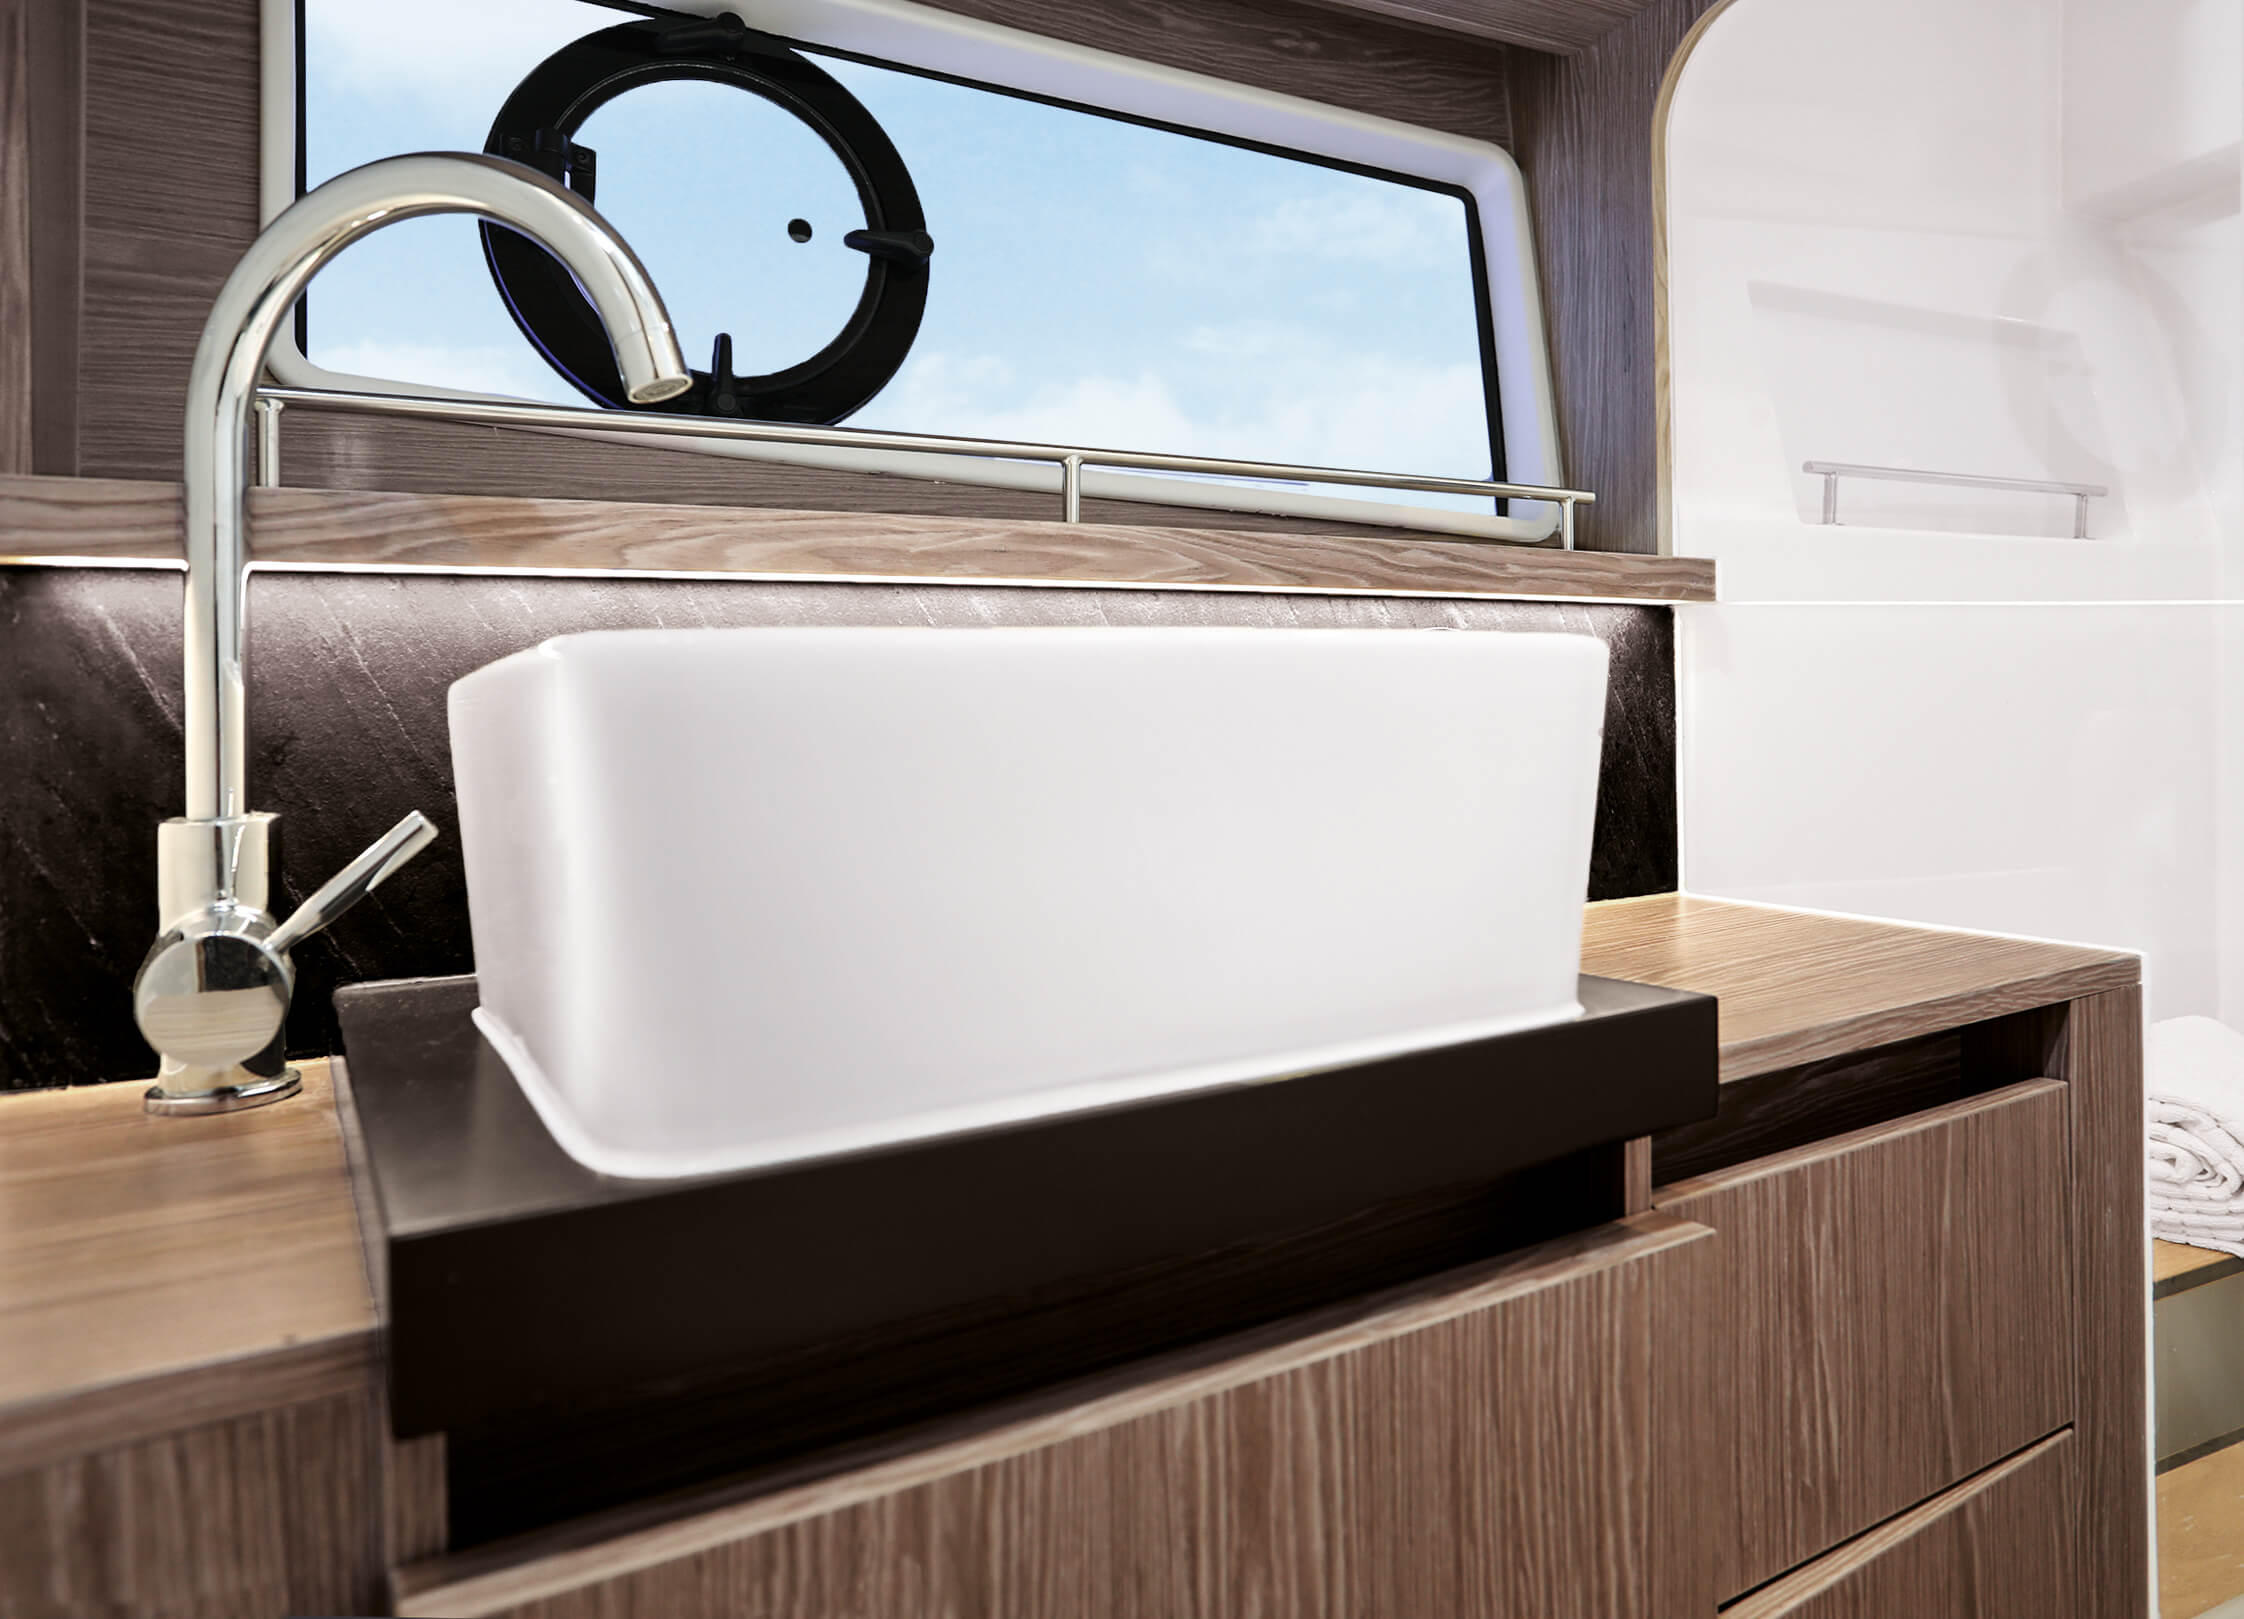 Sealine F430 Intérieur vue | Fully equipped head with separate shower stall with handheld shower, and comfort seat with wood cover. | Sealine